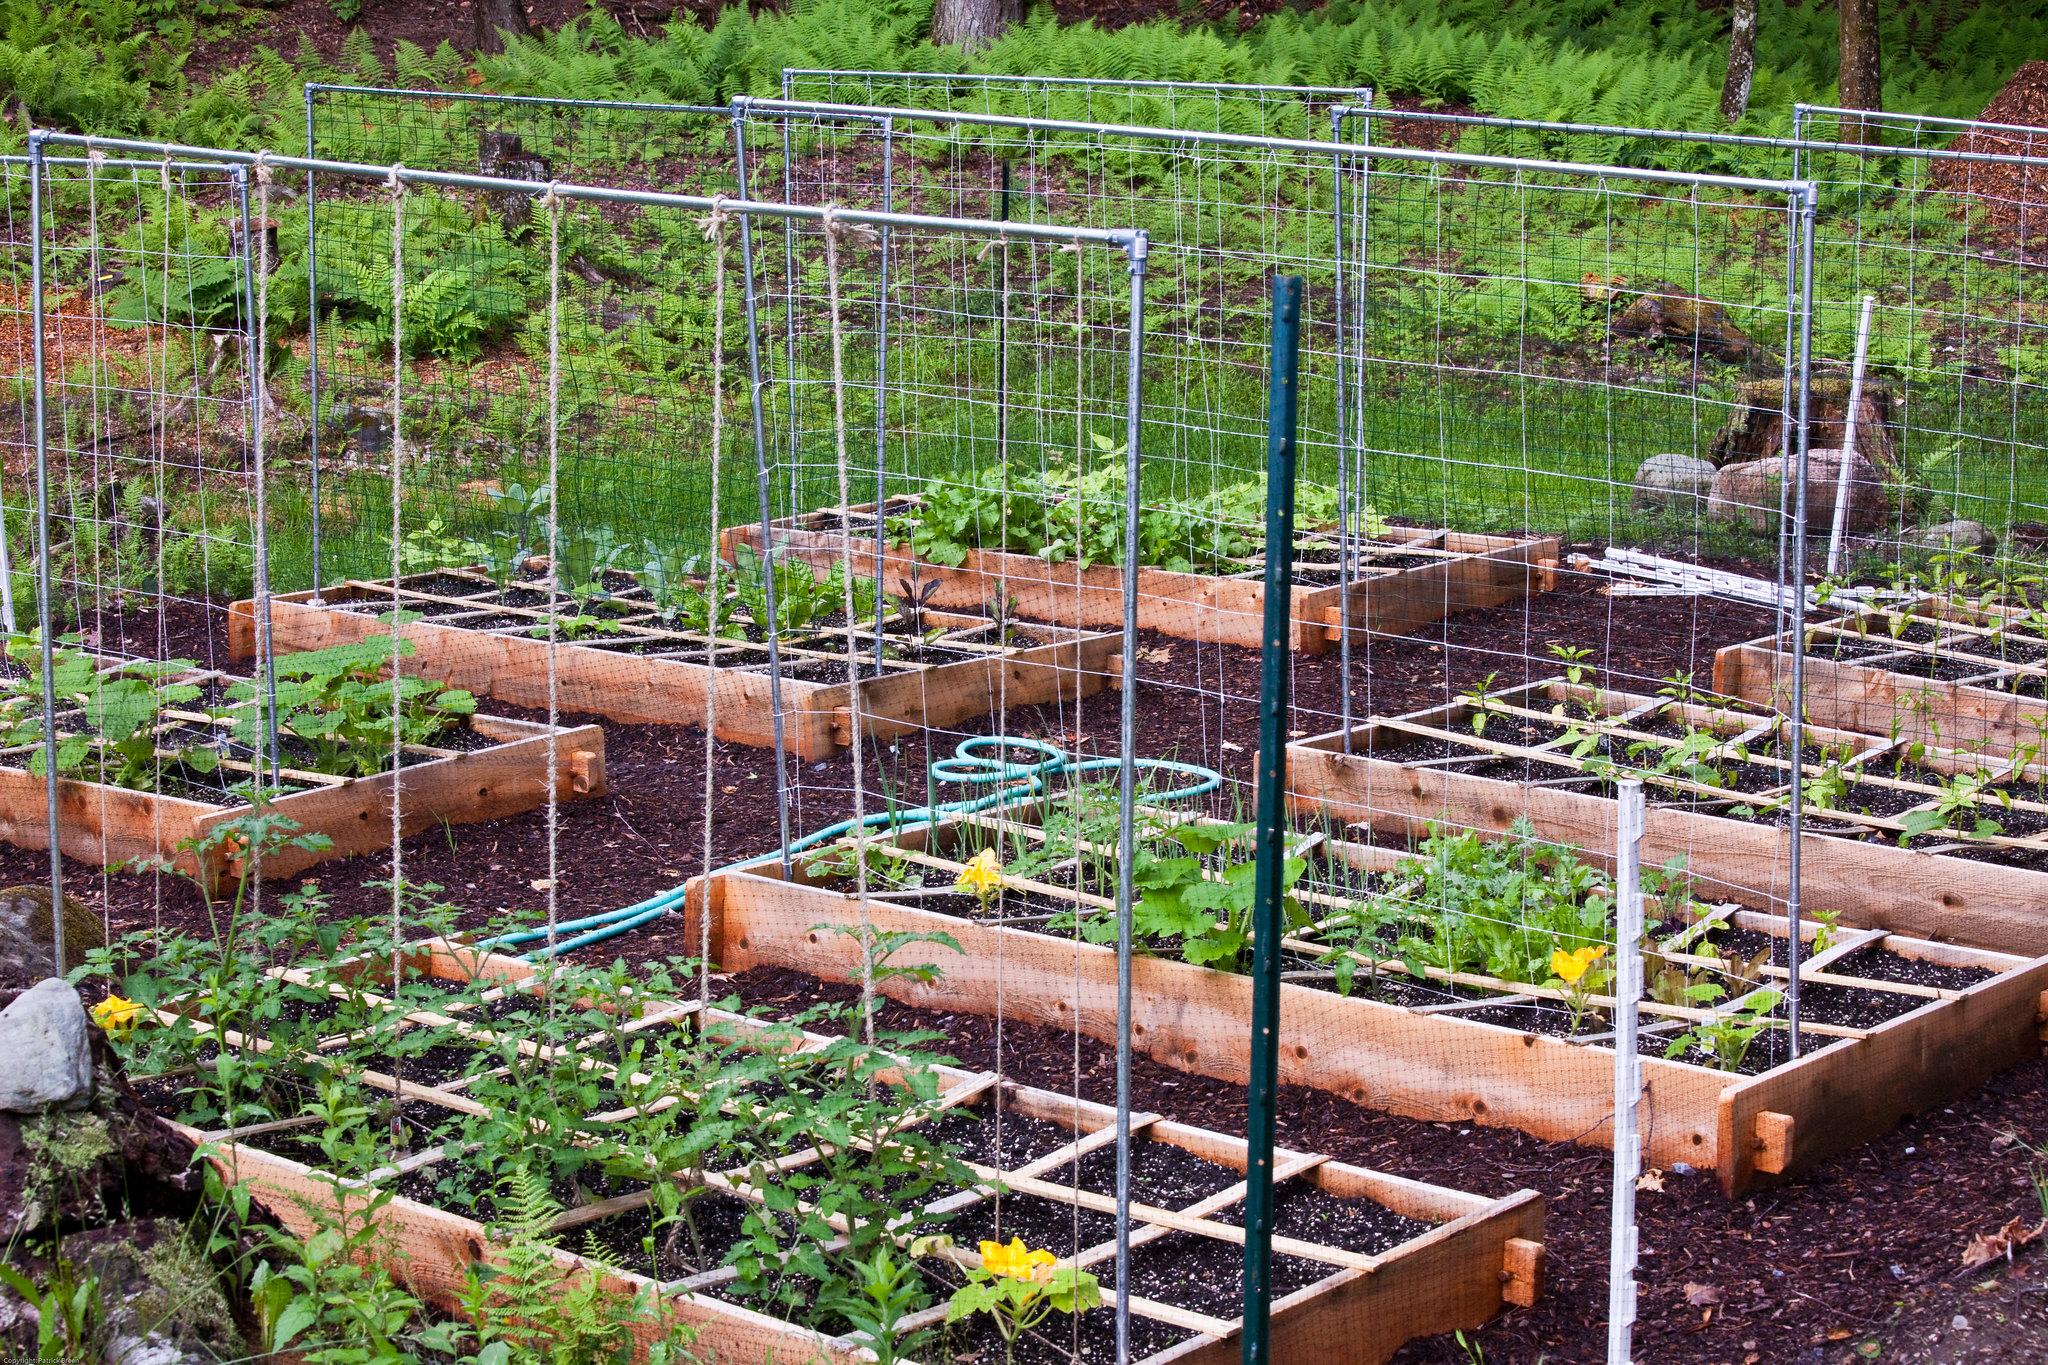 Environmental and Community Horticulture programs